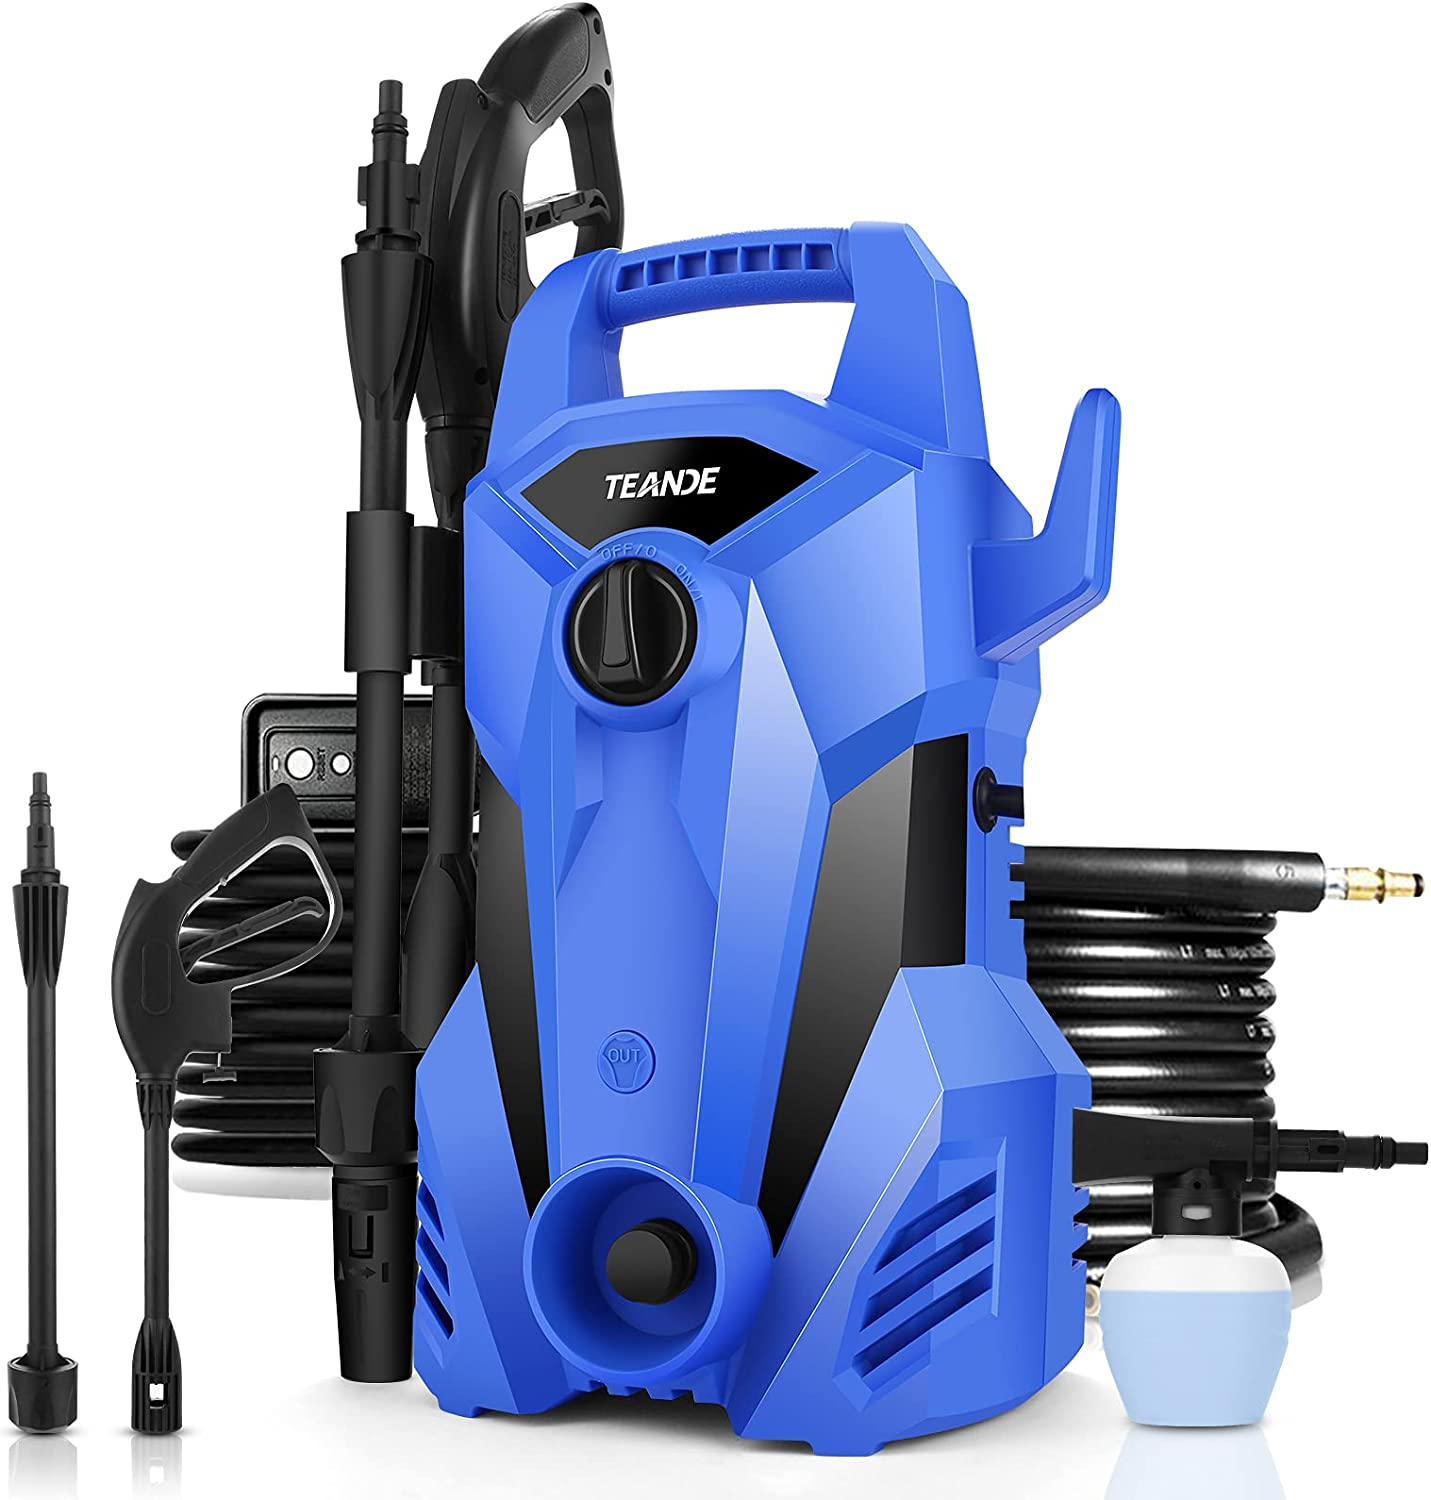 TEANDE 2300PSI Pressure Washer Electric 40% OFF Cheap Sale 2.2GPM Direct store 1